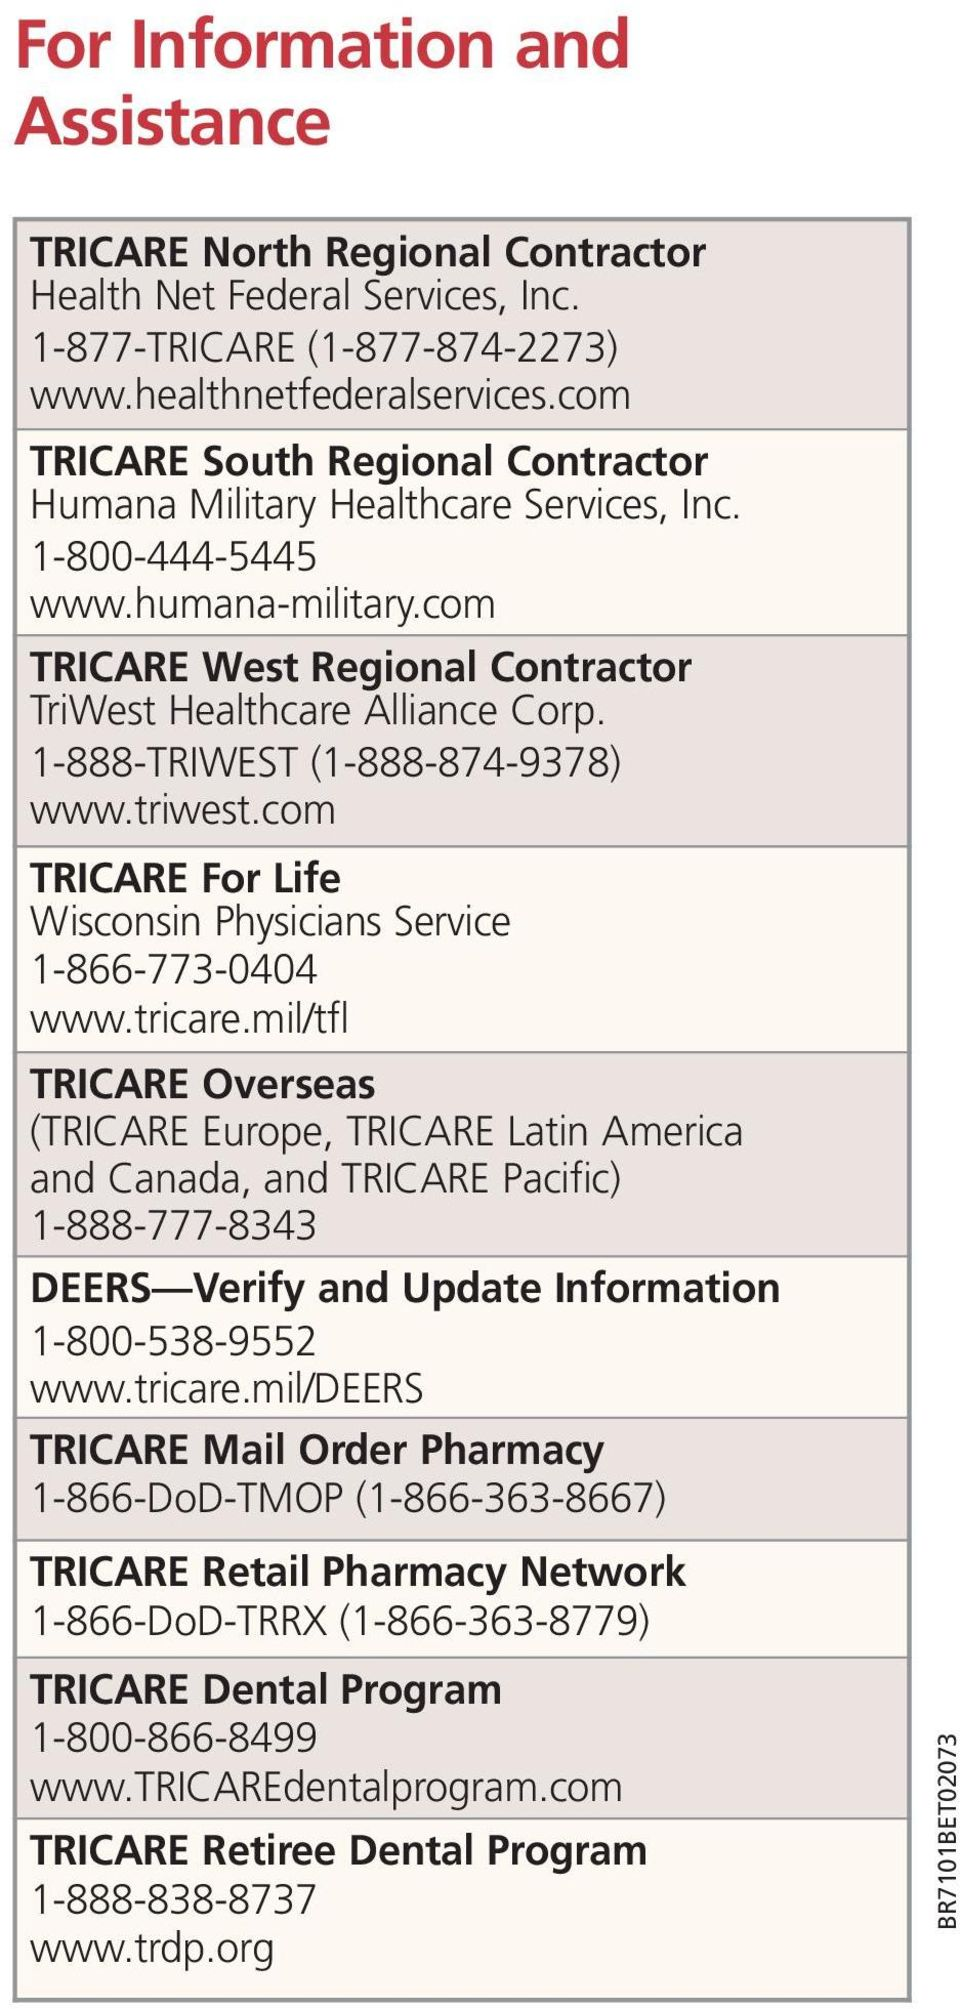 1-888-TRIWEST (1-888-874-9378) www.triwest.com TRICARE For Life Wisconsin Physicians Service 1-866-773-0404 www.tricare.